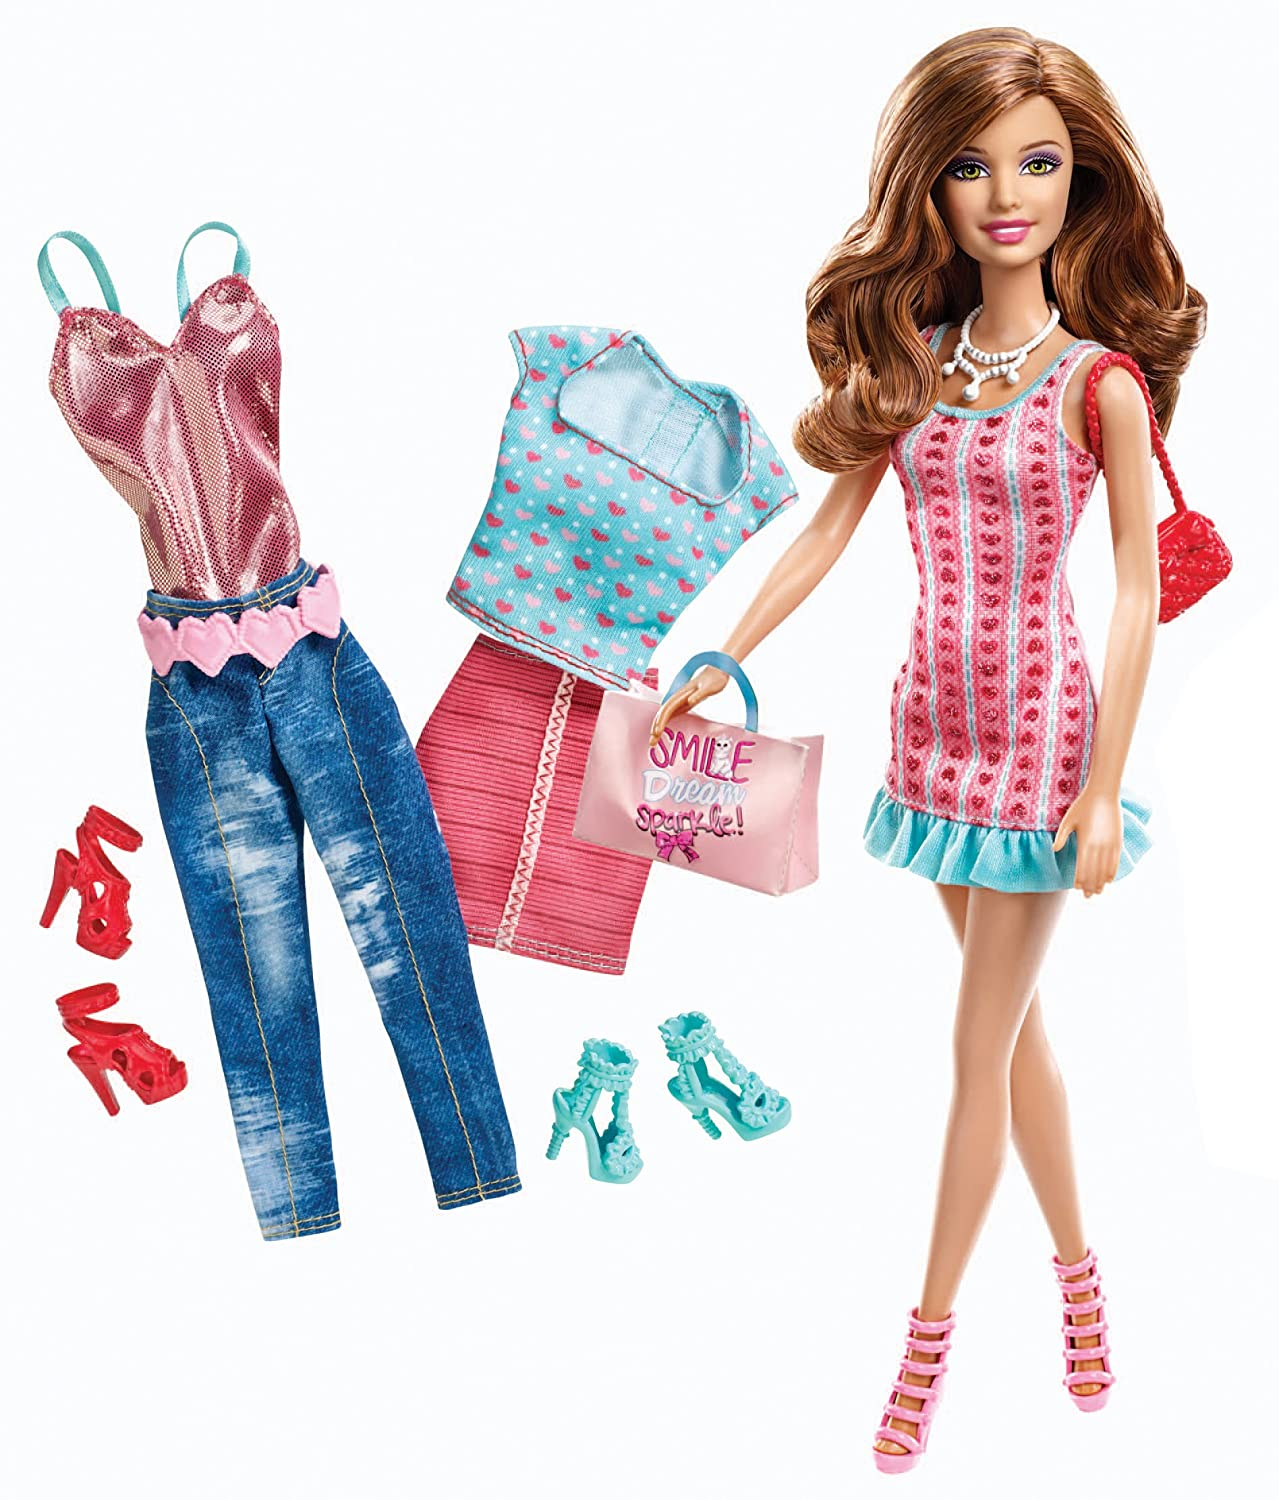 Barbie Photo Fashion Doll Software Barbie Doll and Fashions